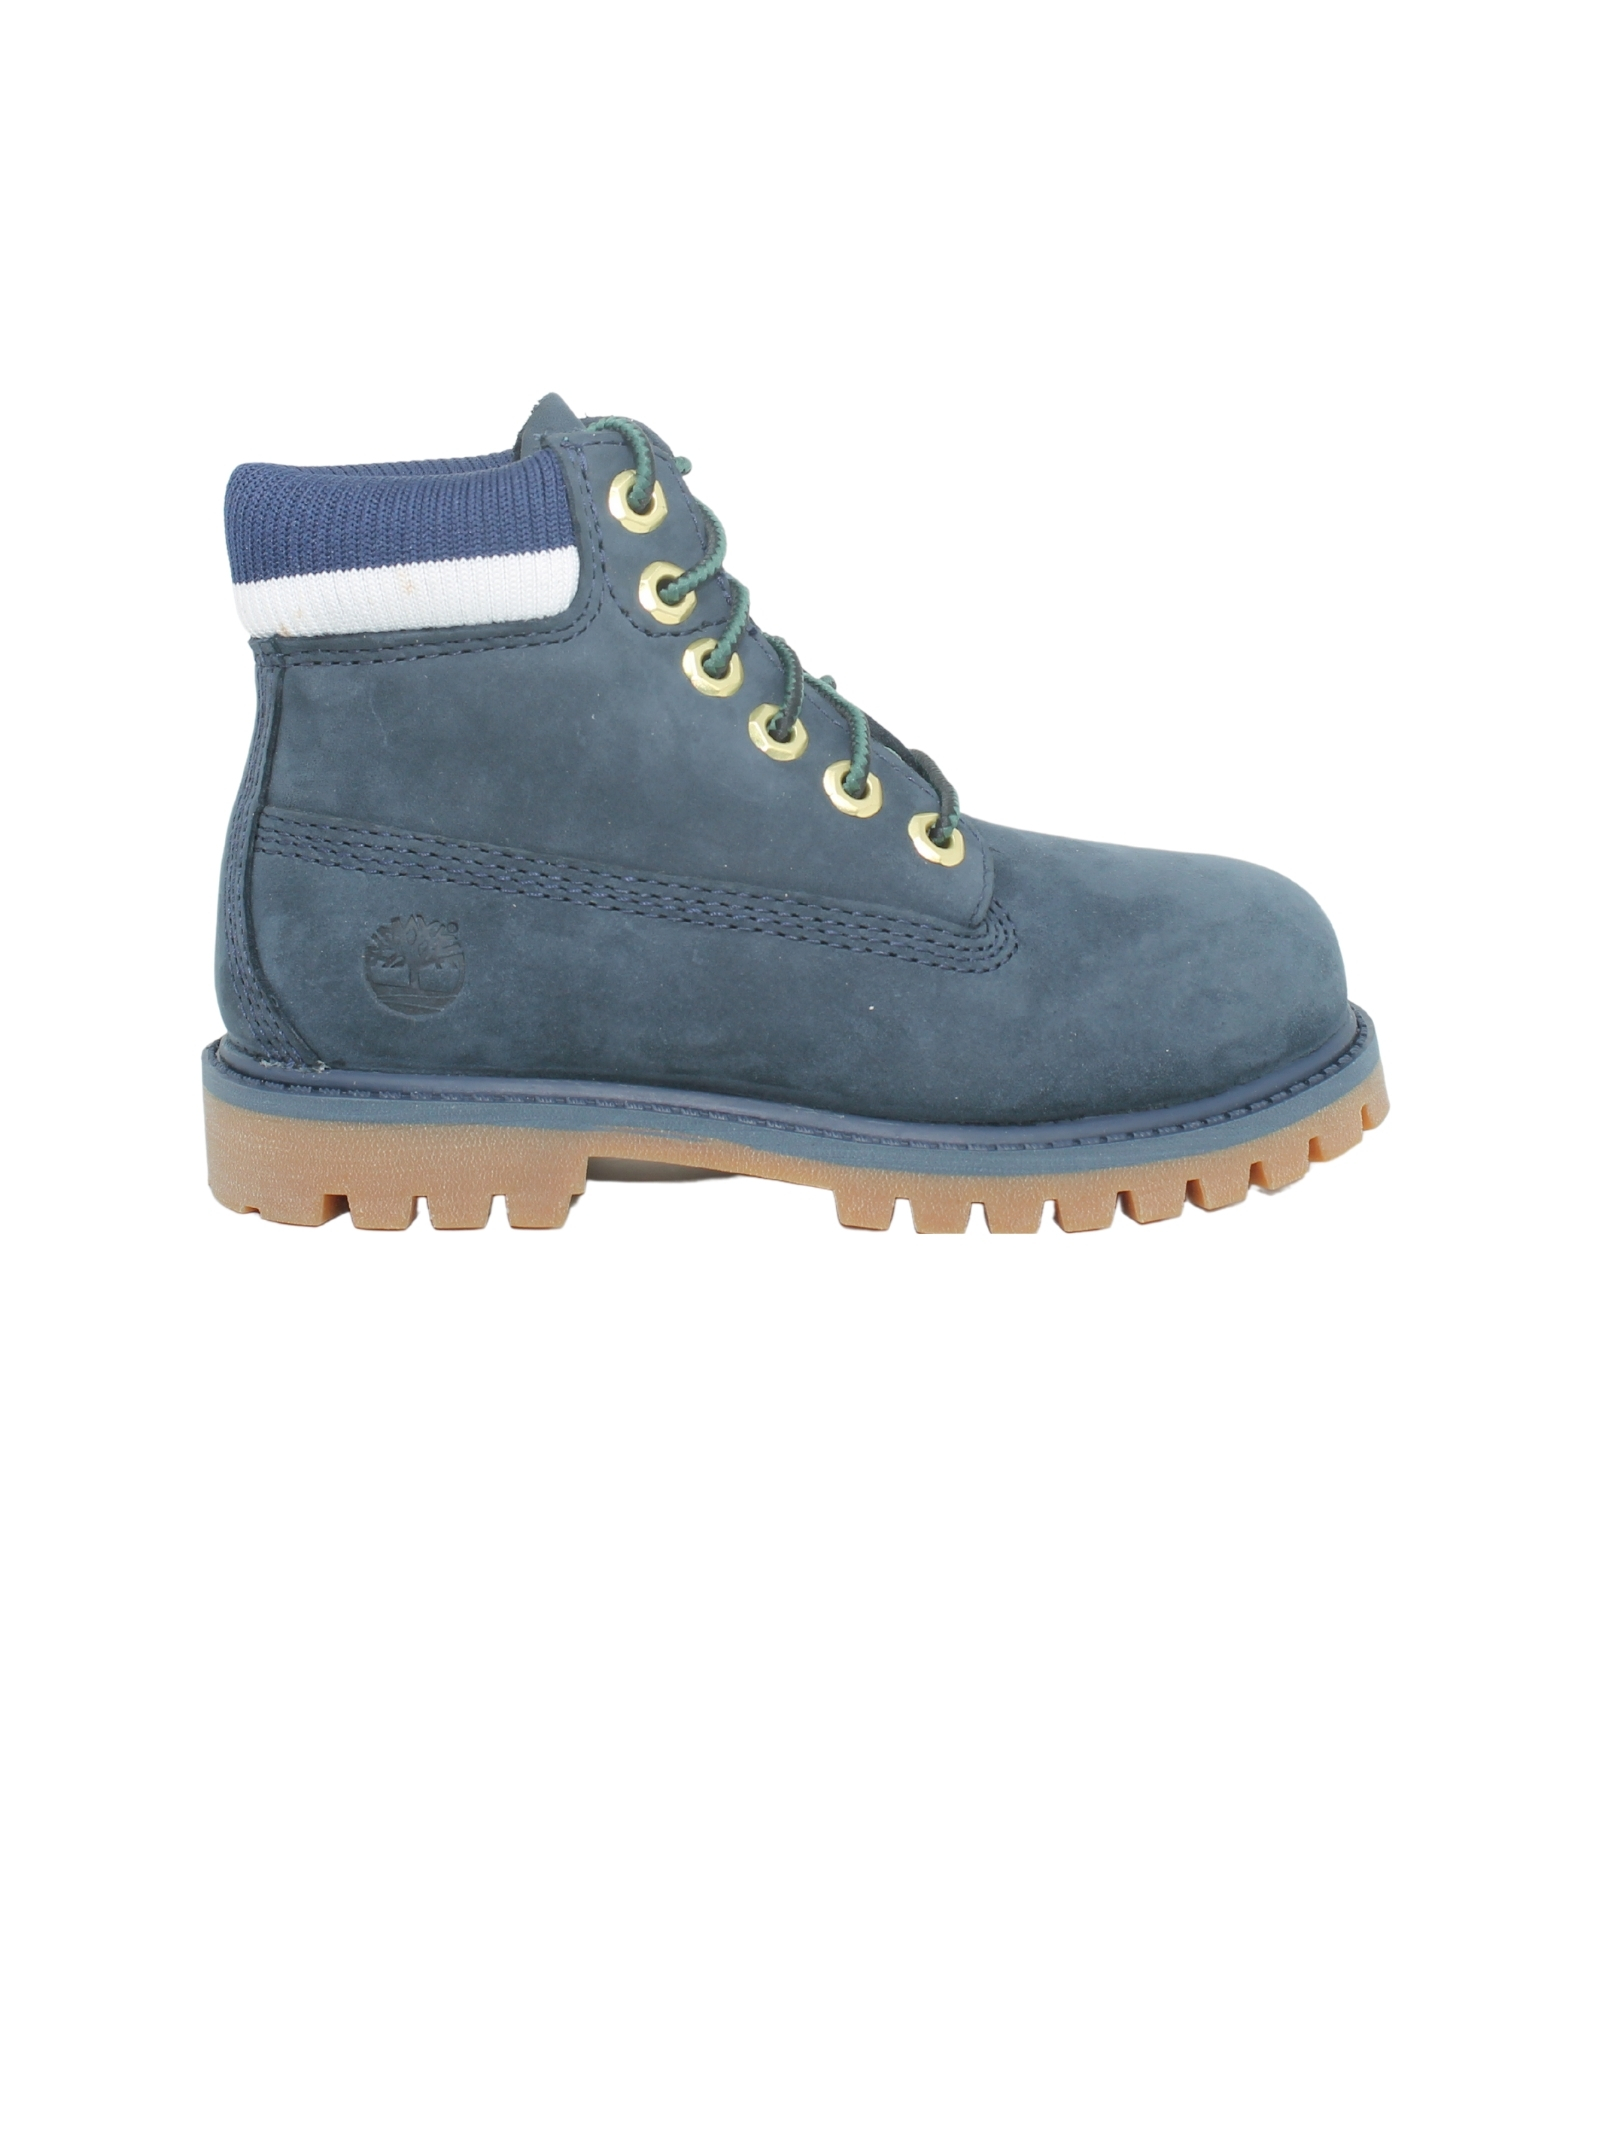 Baby Suede Leather Combat Boots TIMBERLAND KIDS | Amphibians | TB0A2FVA0191BLU